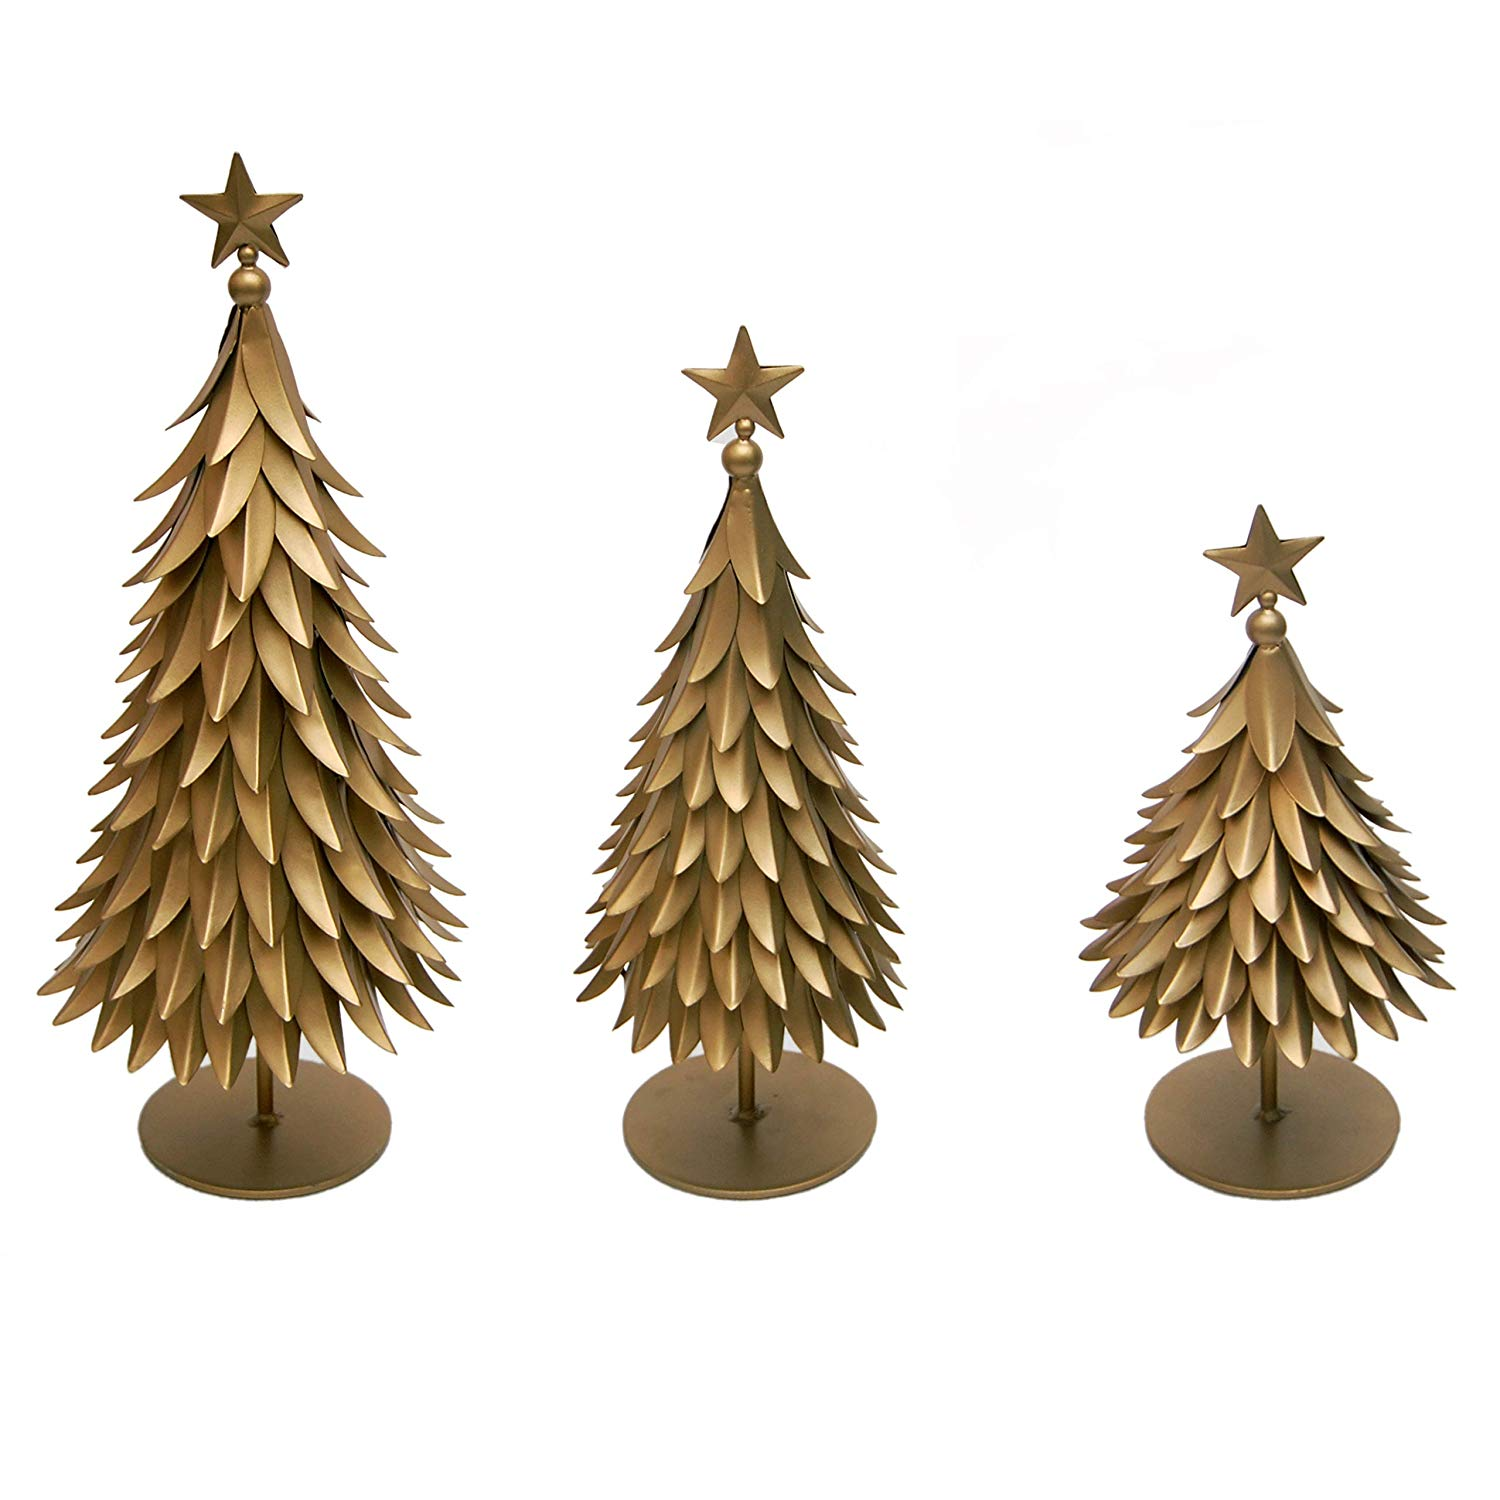 Gold Christmas Tree Figurines